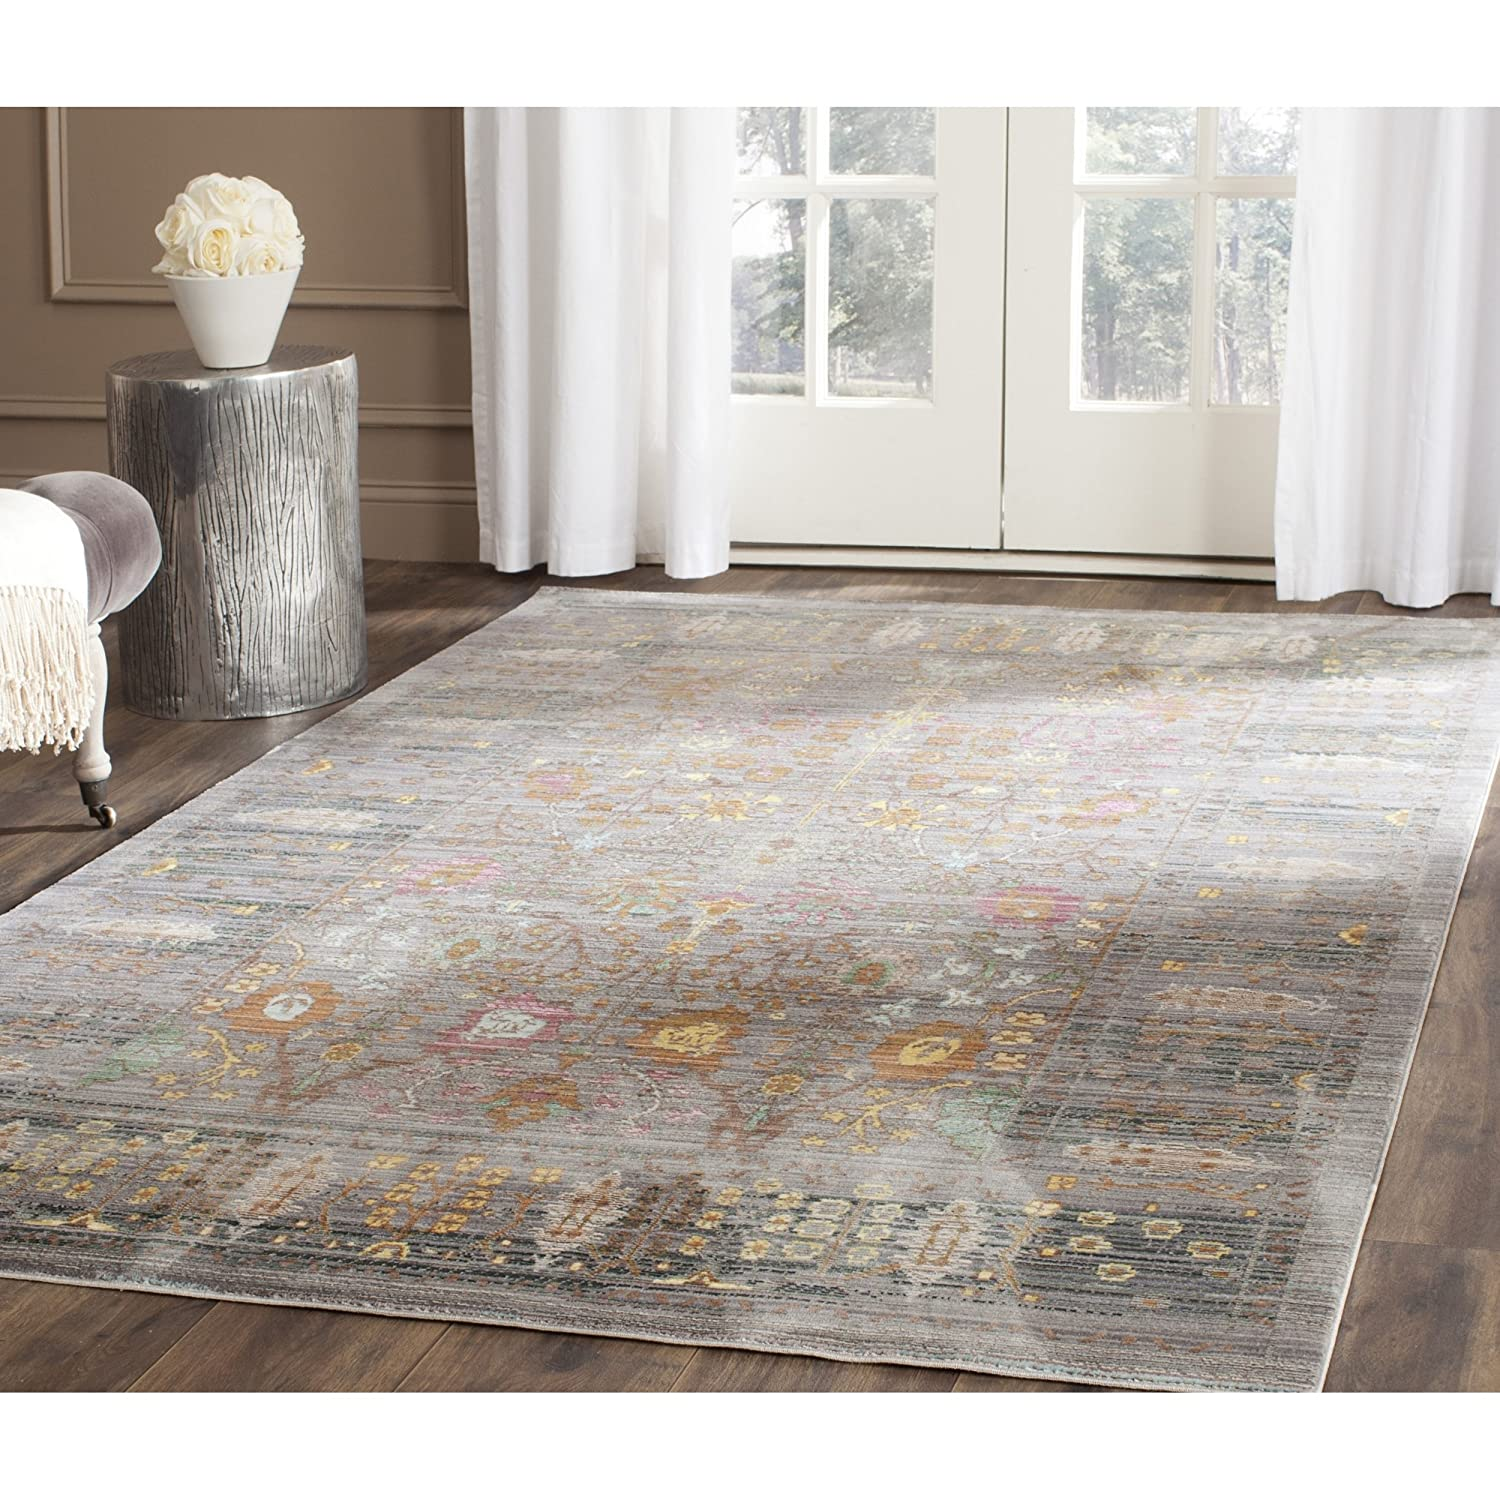 Amazon.com: Safavieh Valencia Collection VAL108C Grey And Multi Vintage  Distressed Silky Polyester Area Rug (8u0027 X 10u0027): Kitchen U0026 Dining